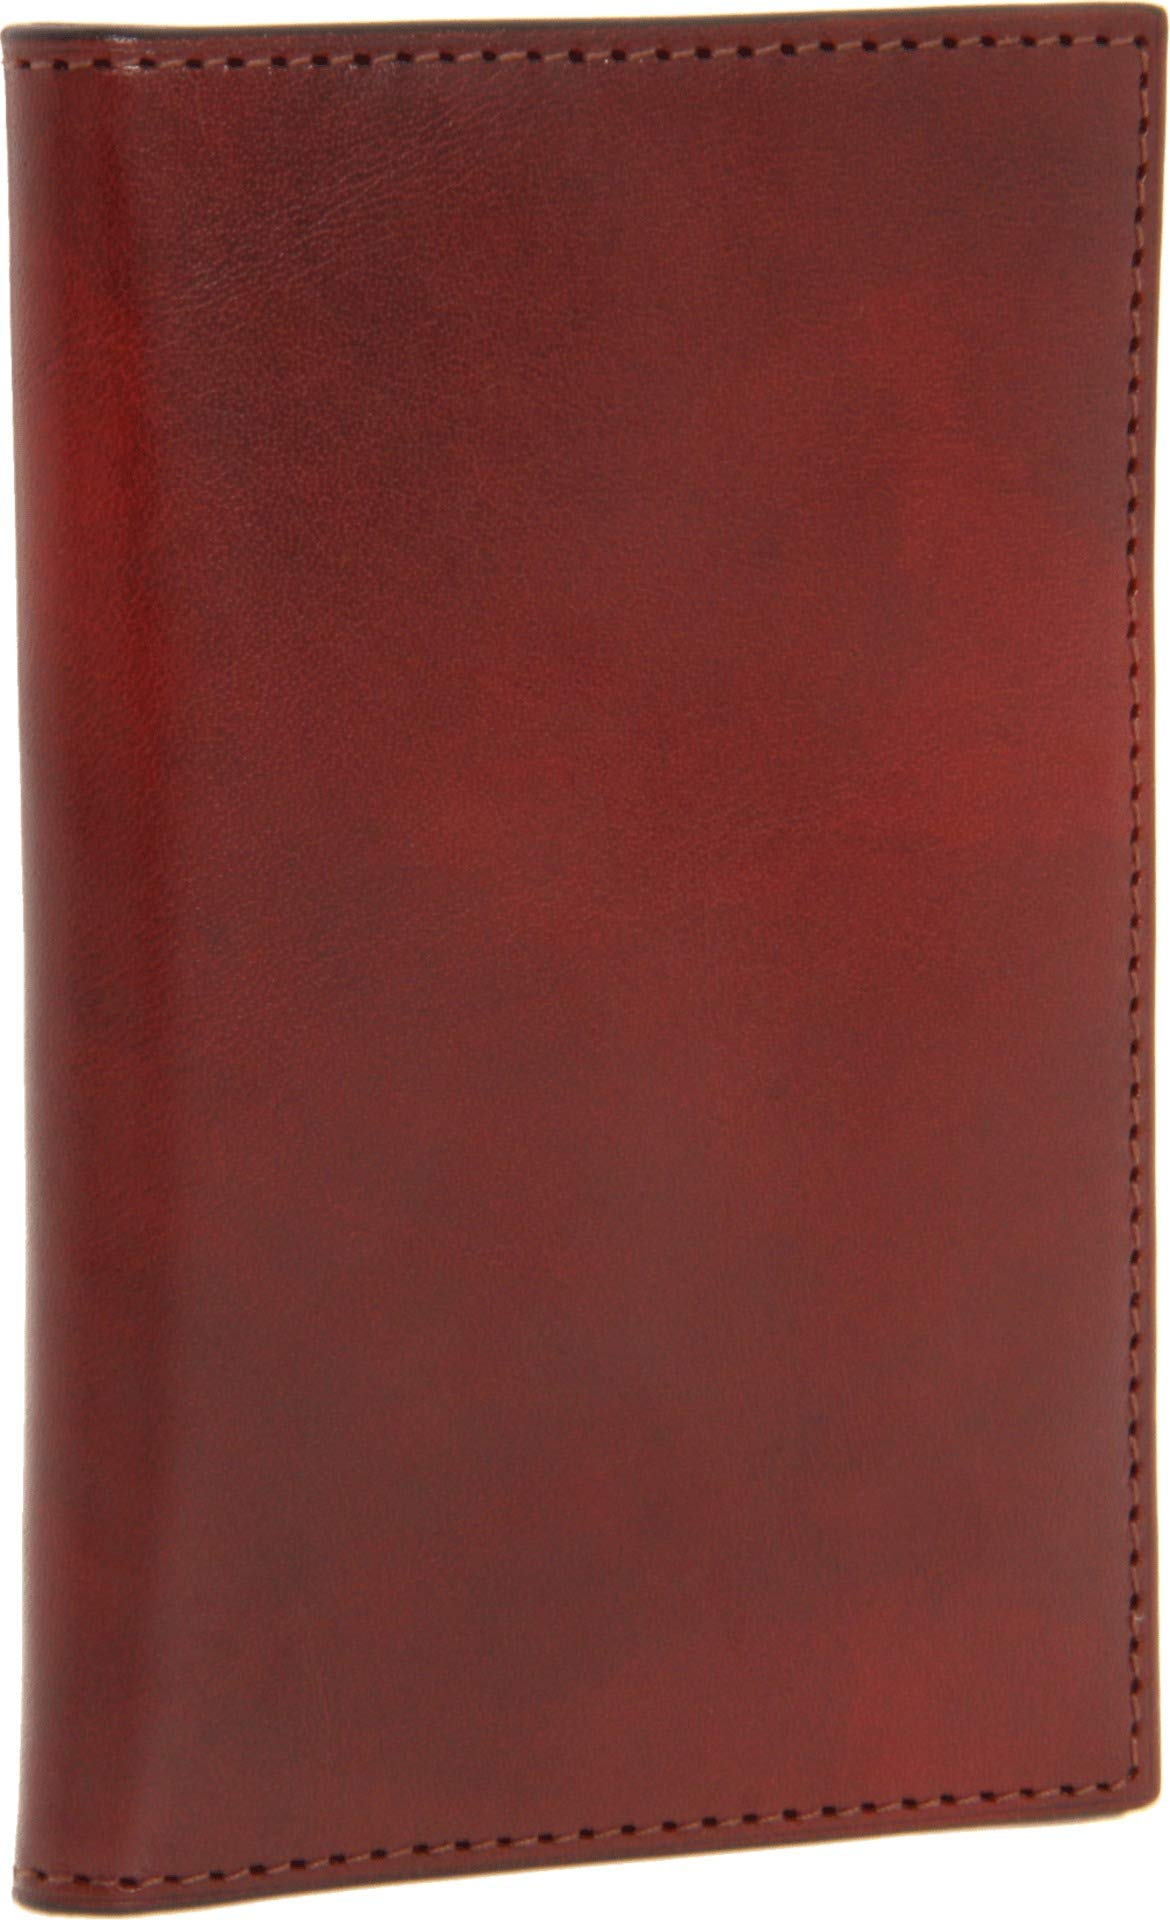 Bosca Old Leather Collection-8 Pocket Credit Card Case, Cognac